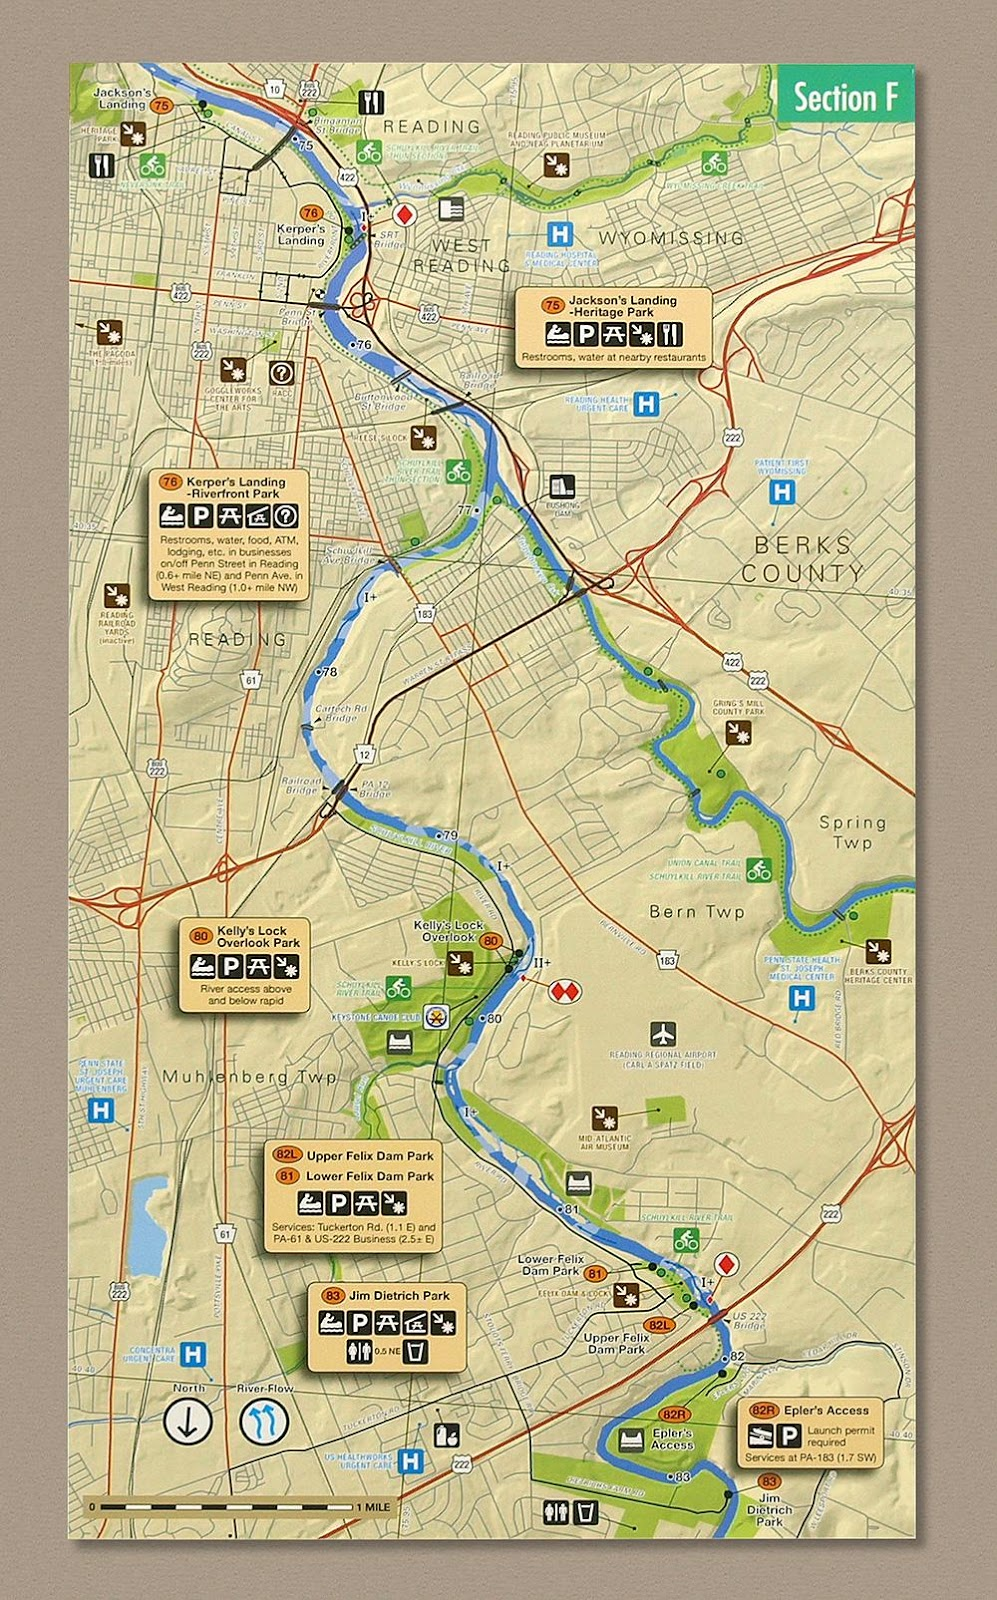 enlarged action maps and text guidance through the more difficult river features and photos quotes and illustrations that add to the story of that